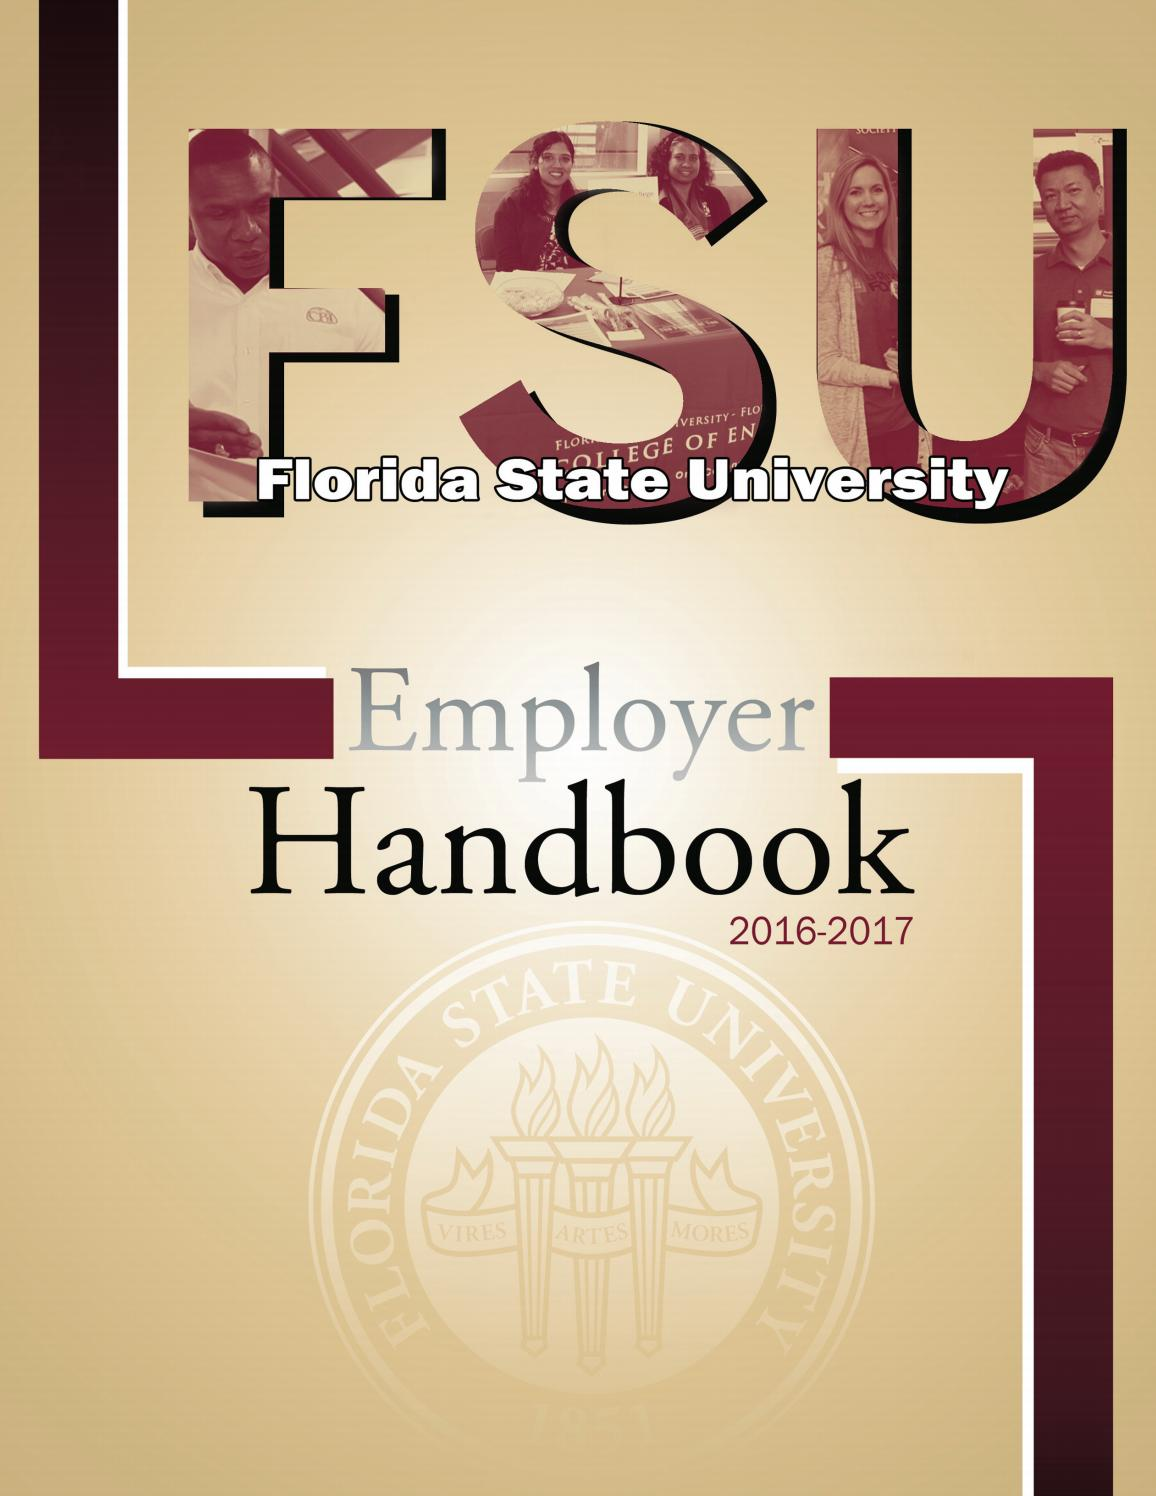 fsu employer handbook 2016